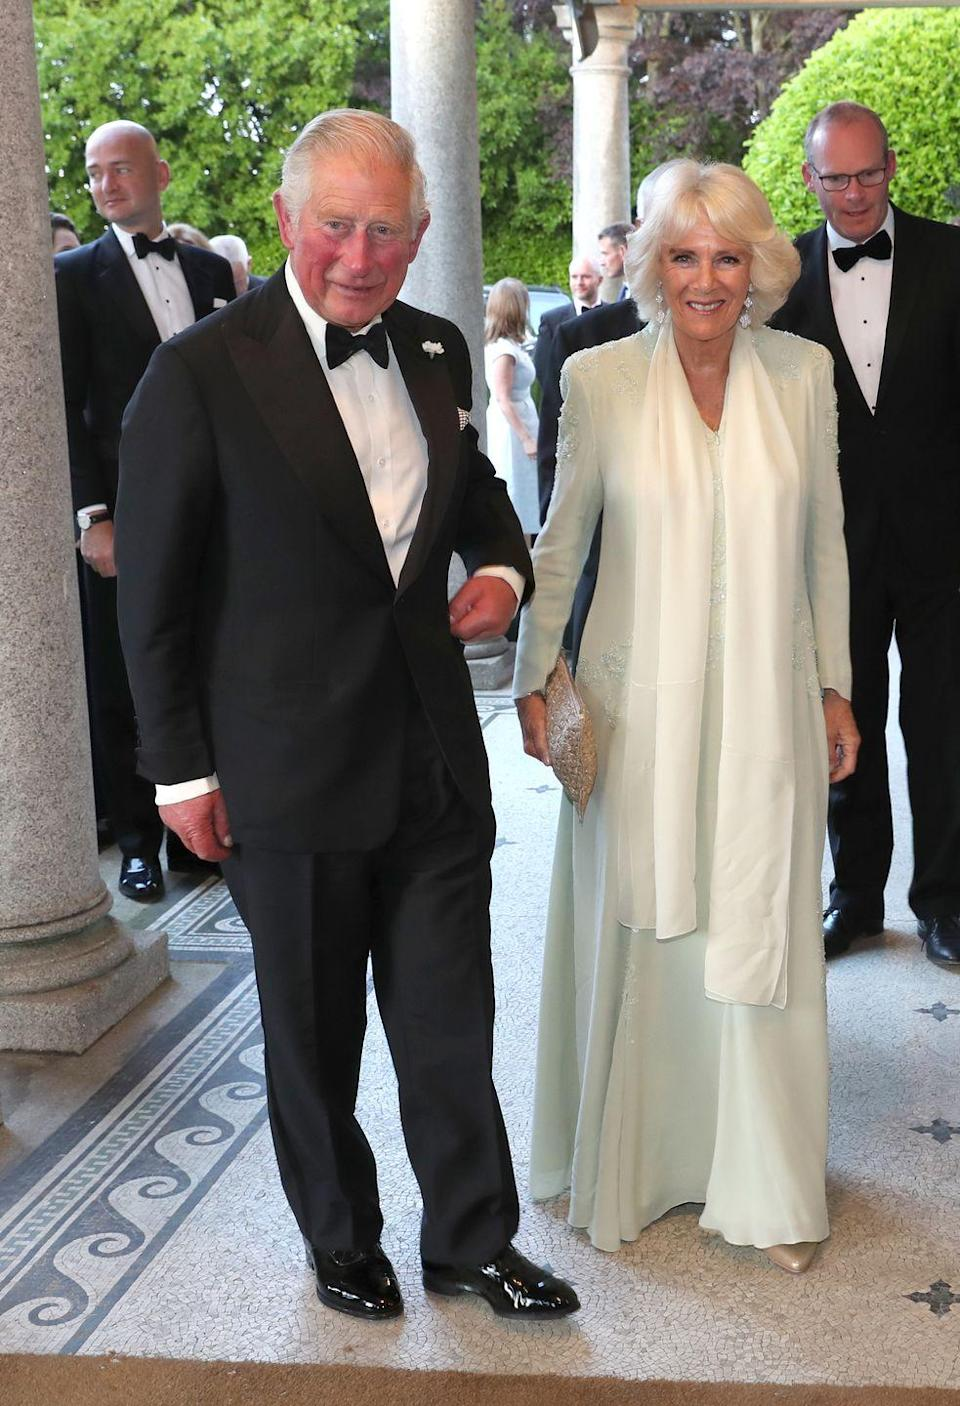 <p>The Duchess of Cornwall looked lovely in a white gown during a dinner to celebrate U.K./Ireland relations in Dublin. </p>